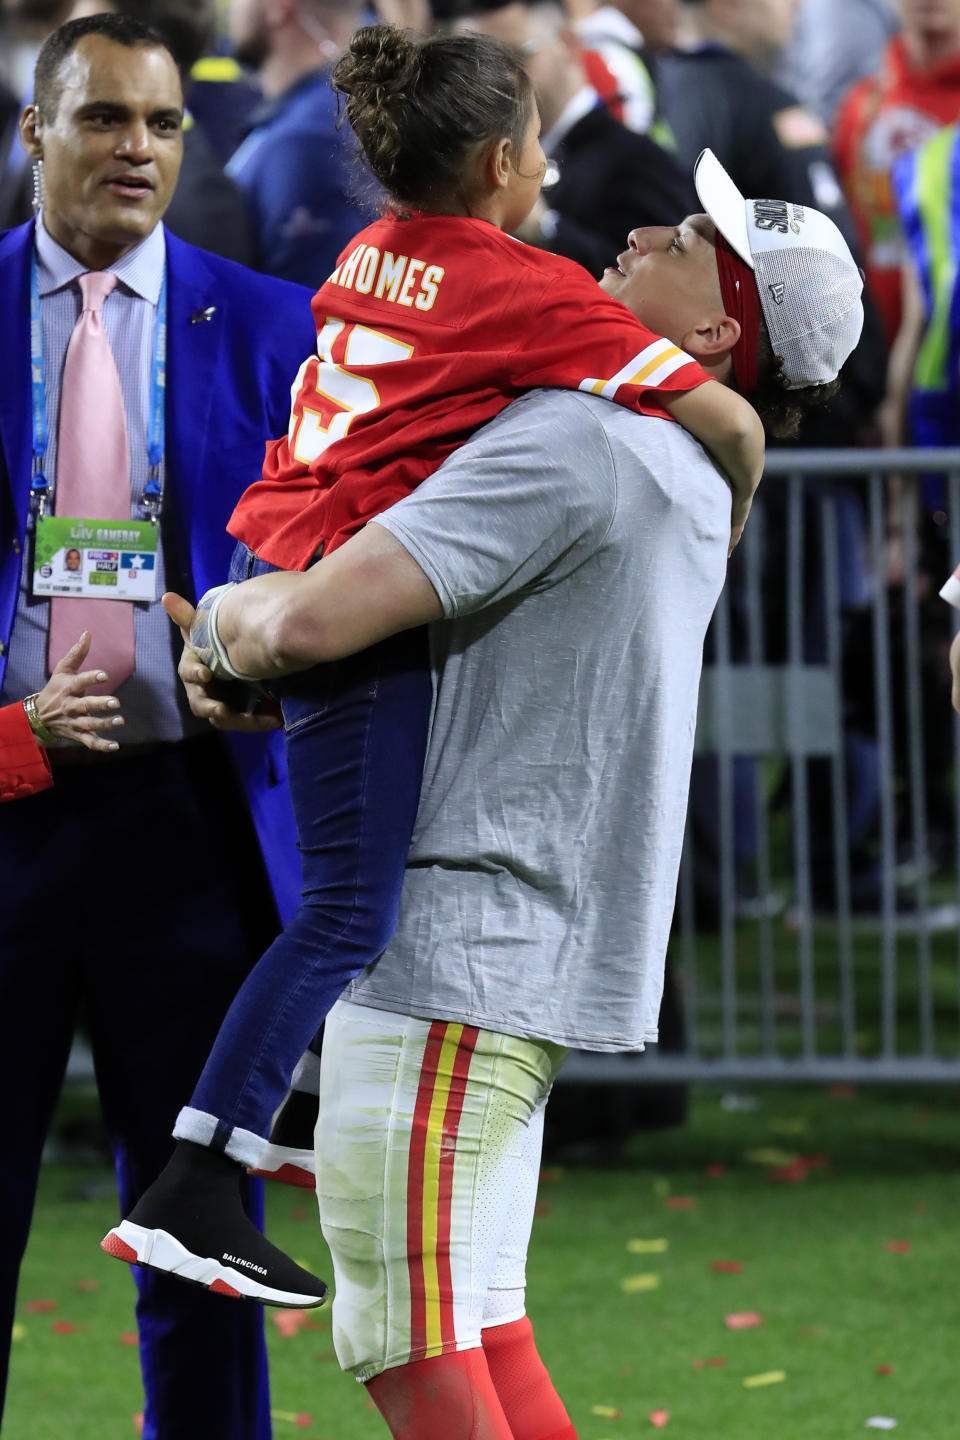 MIAMI, FLORIDA - FEBRUARY 02: Patrick Mahomes #15 of the Kansas City Chiefs celebrates after defeating San Francisco 49ers 31-20 in Super Bowl LIV at Hard Rock Stadium on February 02, 2020 in Miami, Florida. (Photo by Andy Lyons/Getty Images)